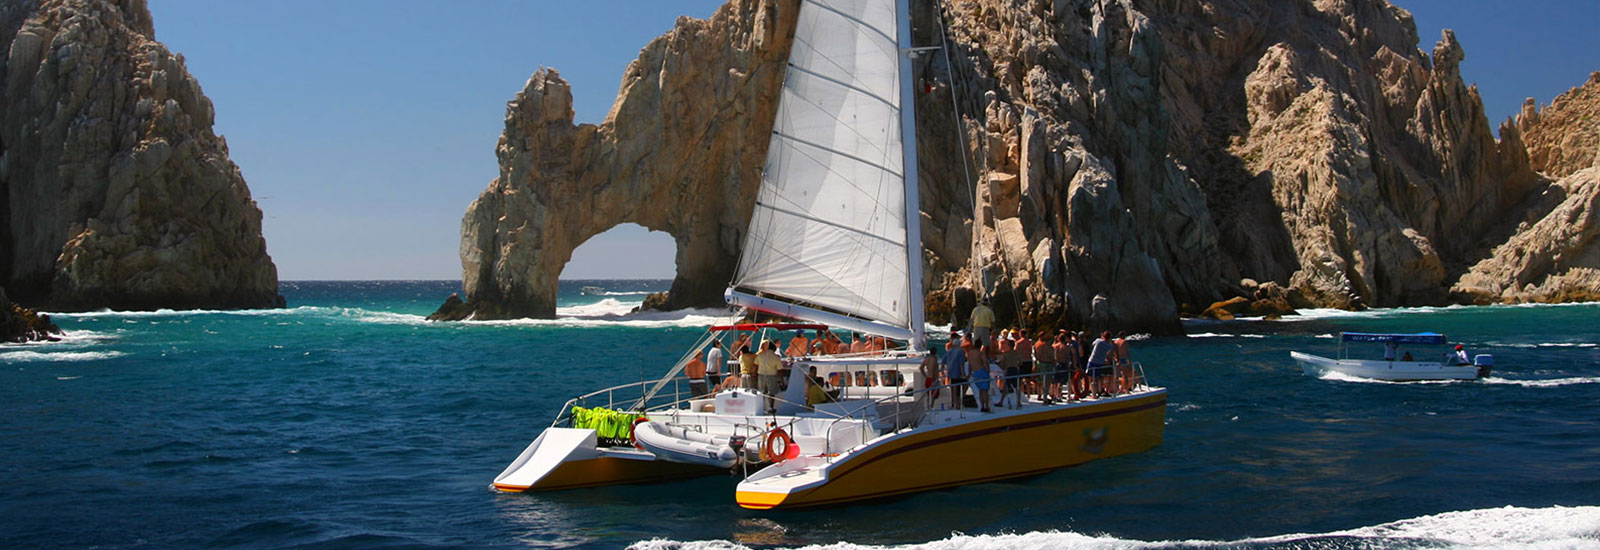 Snorkeling In Los Cabos Swim Sup And Power Snorkel With Us